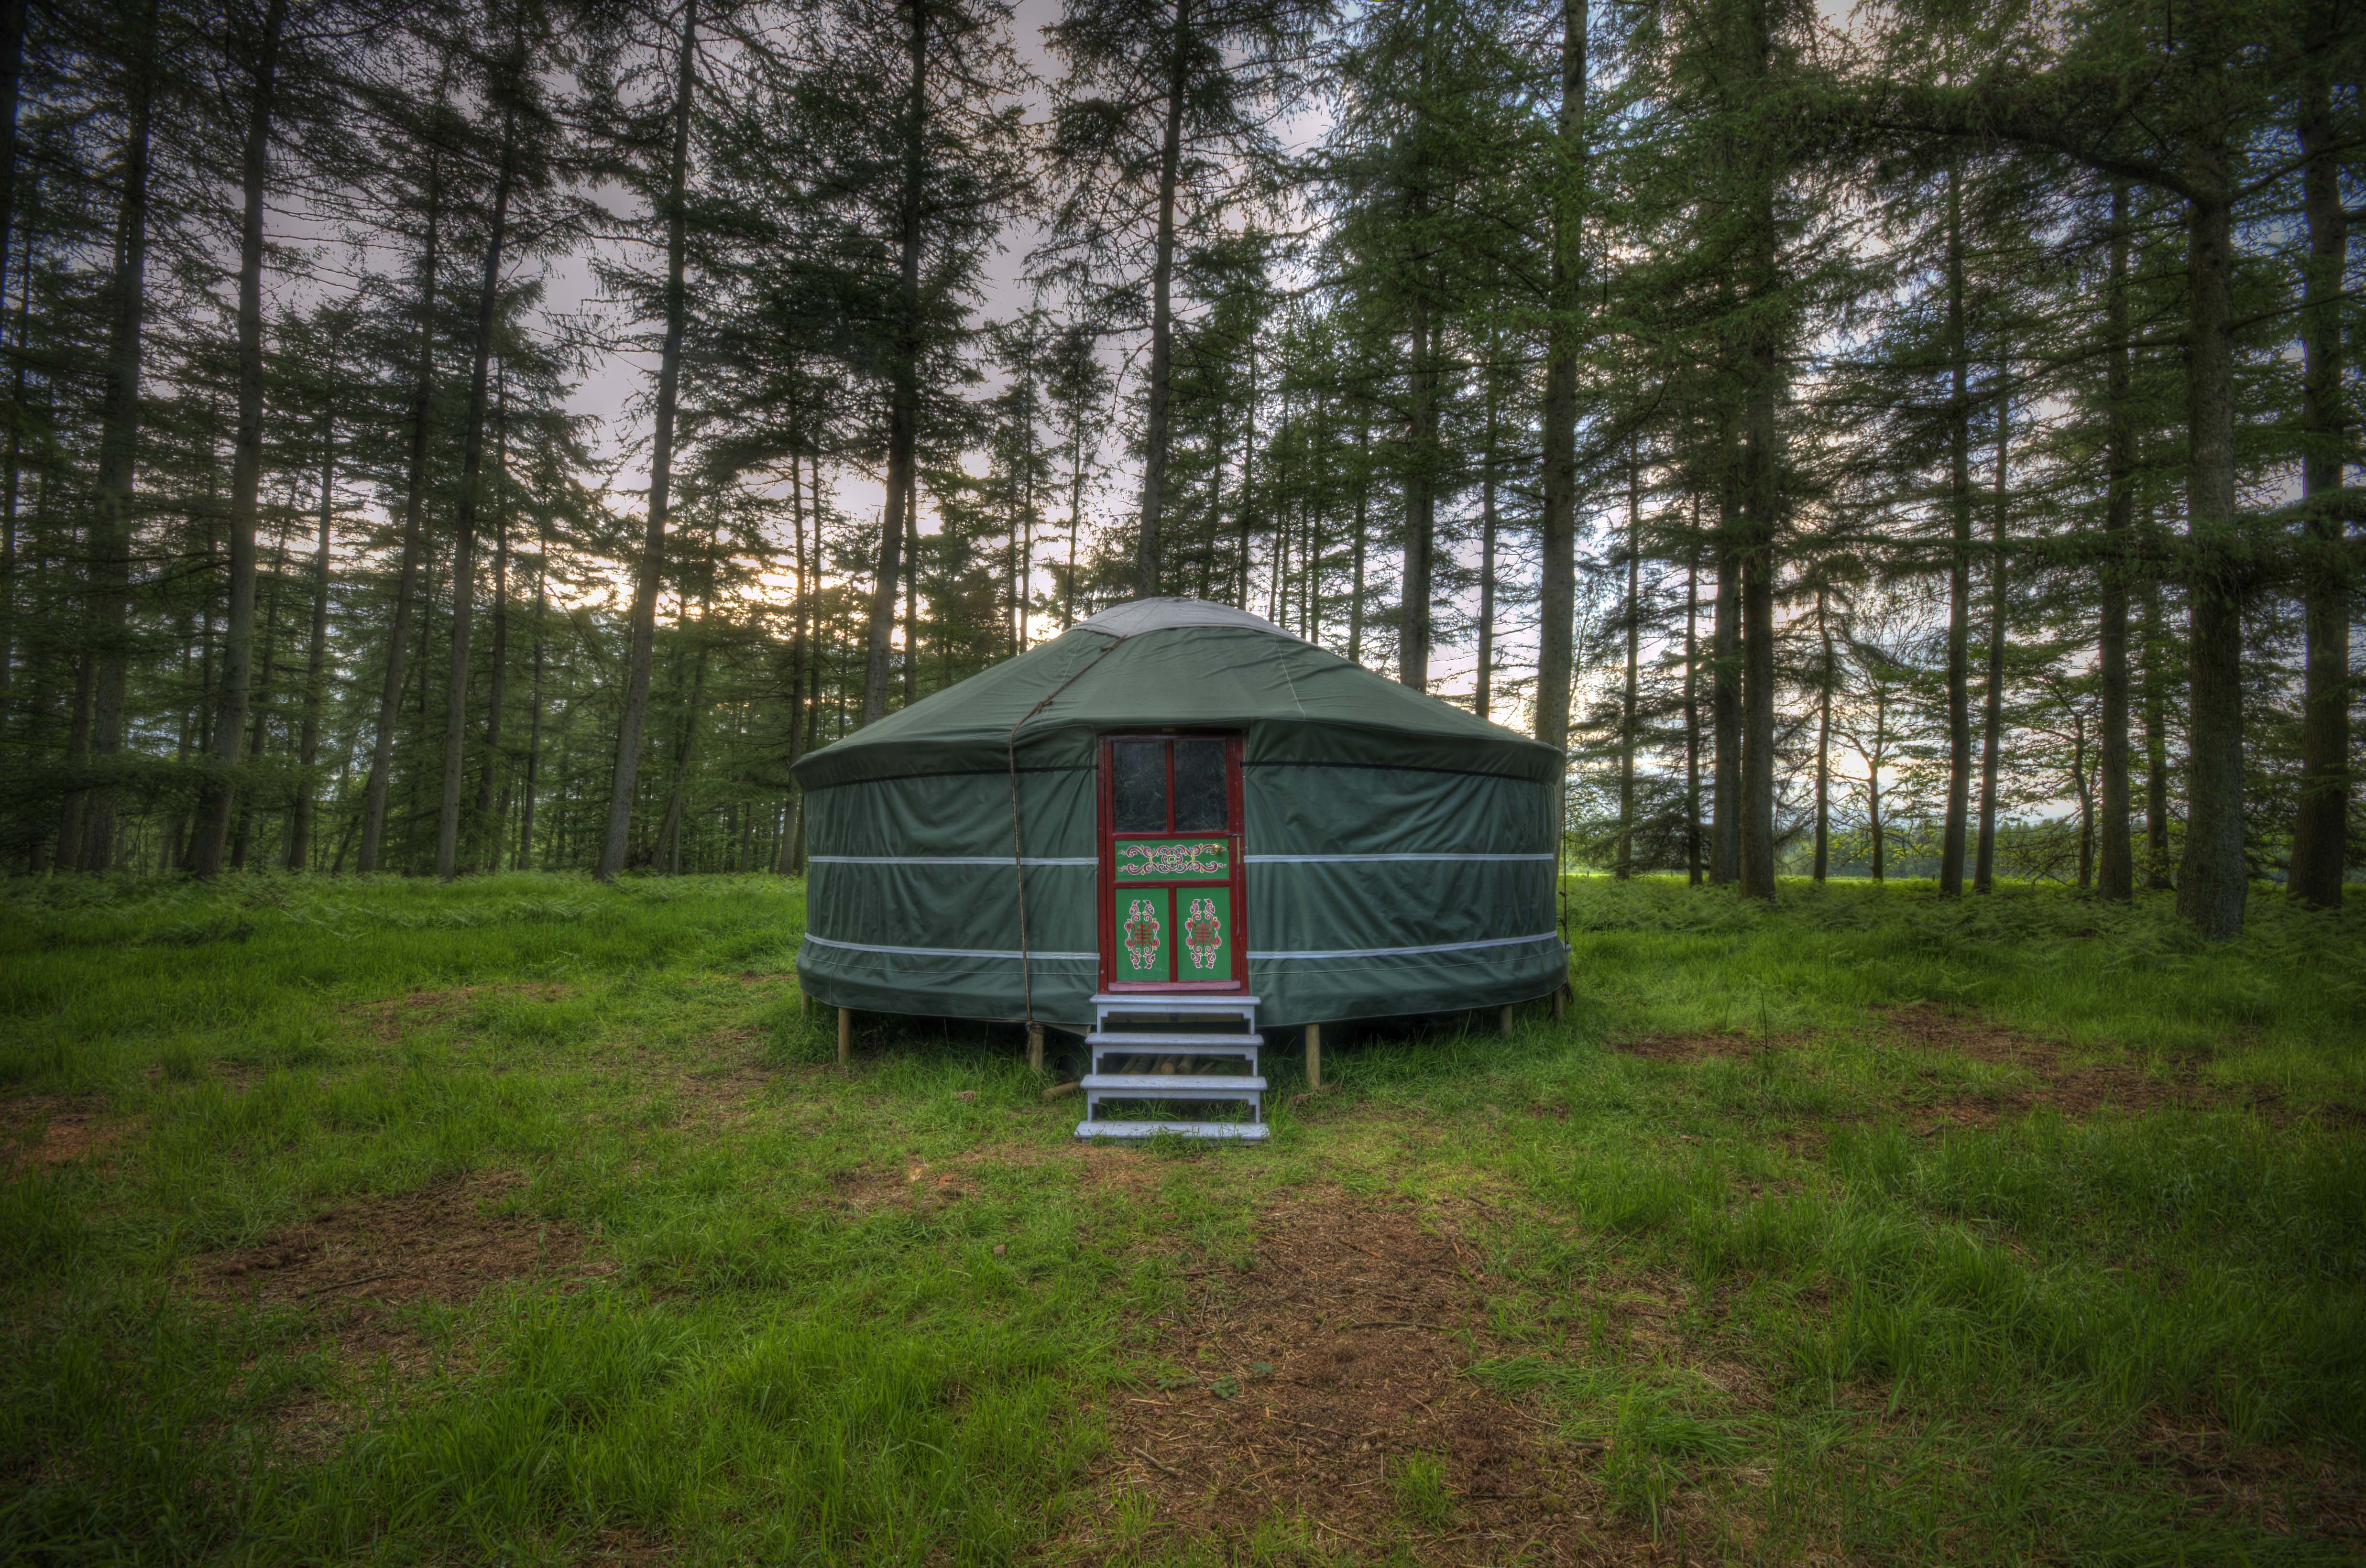 netherby woodland yurt canopy stars. Black Bedroom Furniture Sets. Home Design Ideas